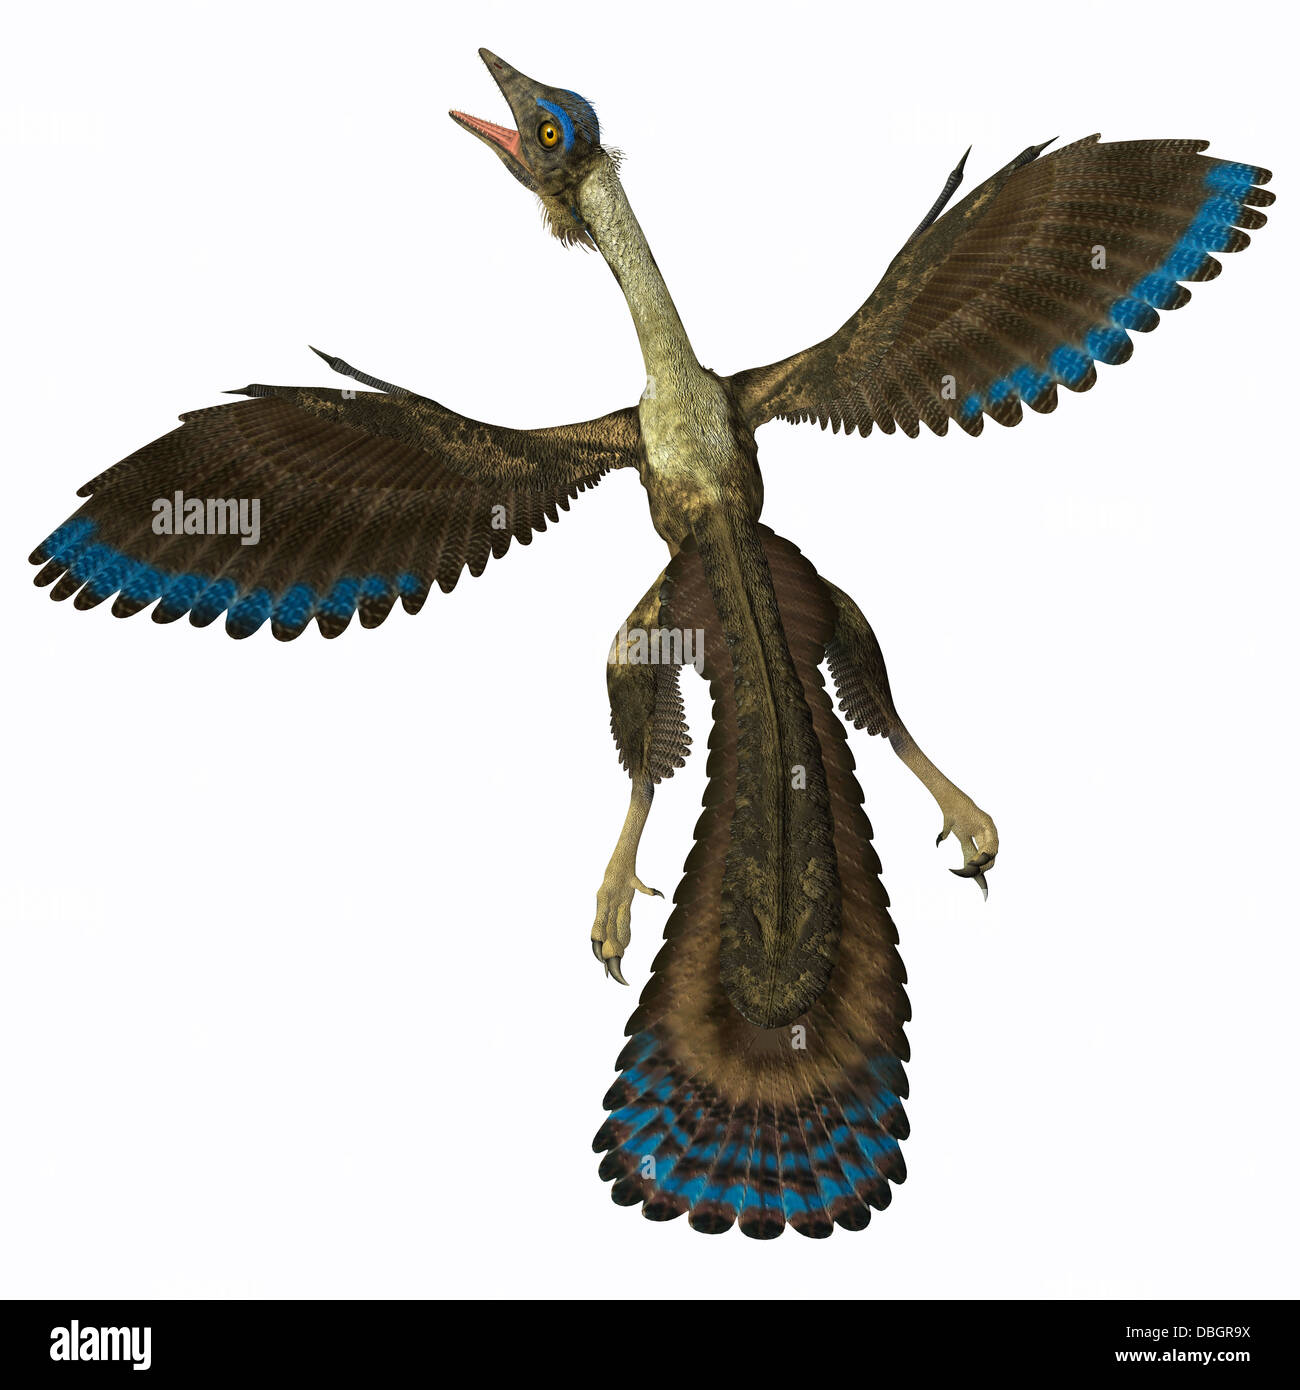 Archaeopteryx is known as the earliest bird and was a bridge species between dinosaurs and modern birds. - Stock Image